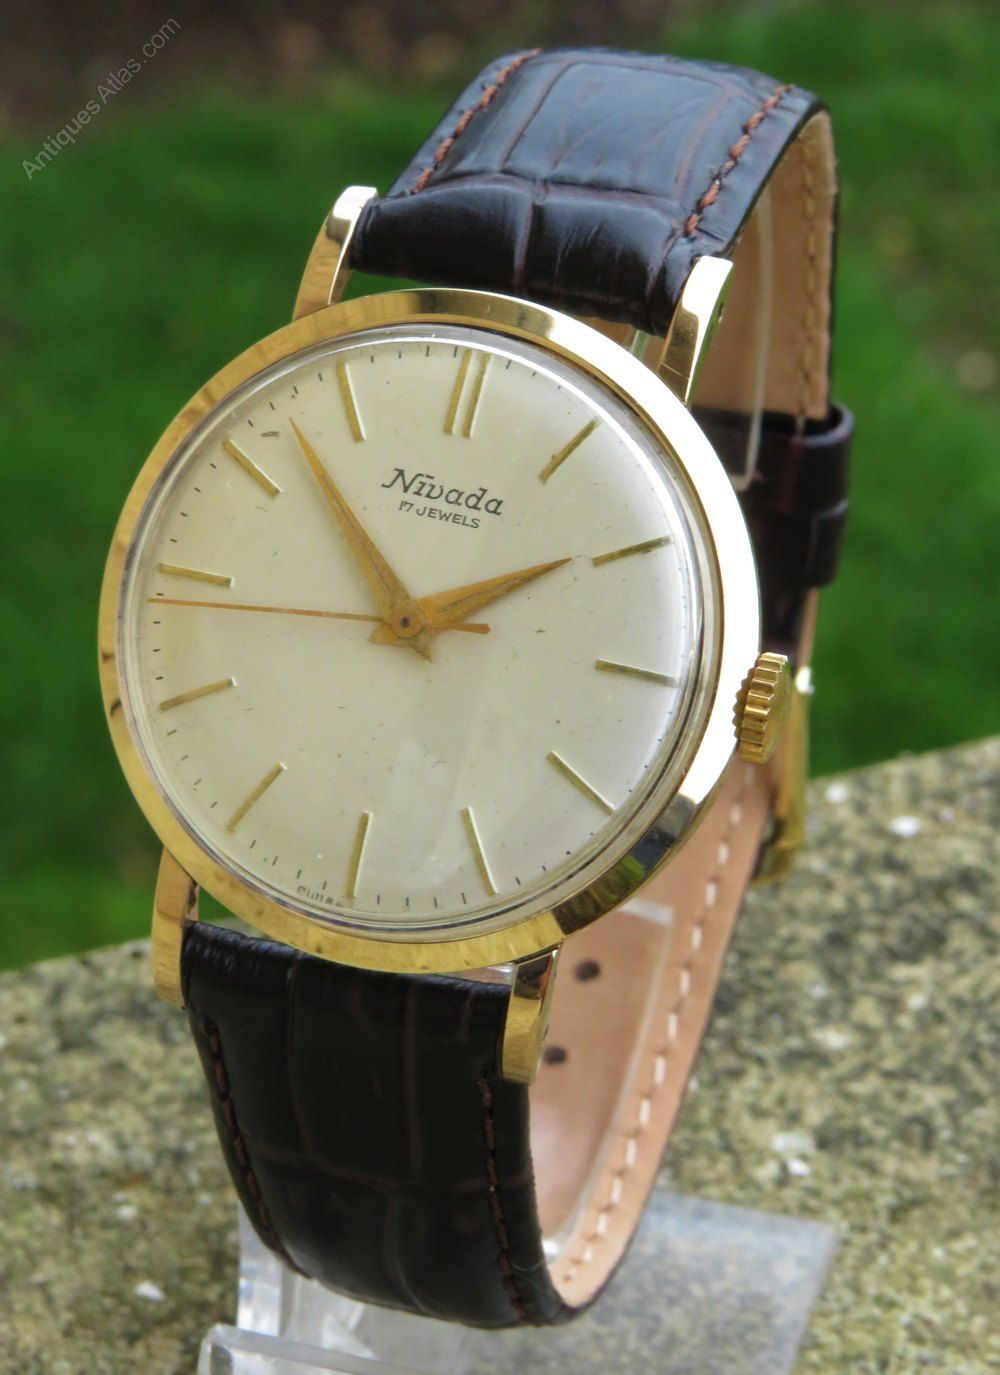 Gents 9ct gold Nivada wrist watch, 1959 #vintagewatches